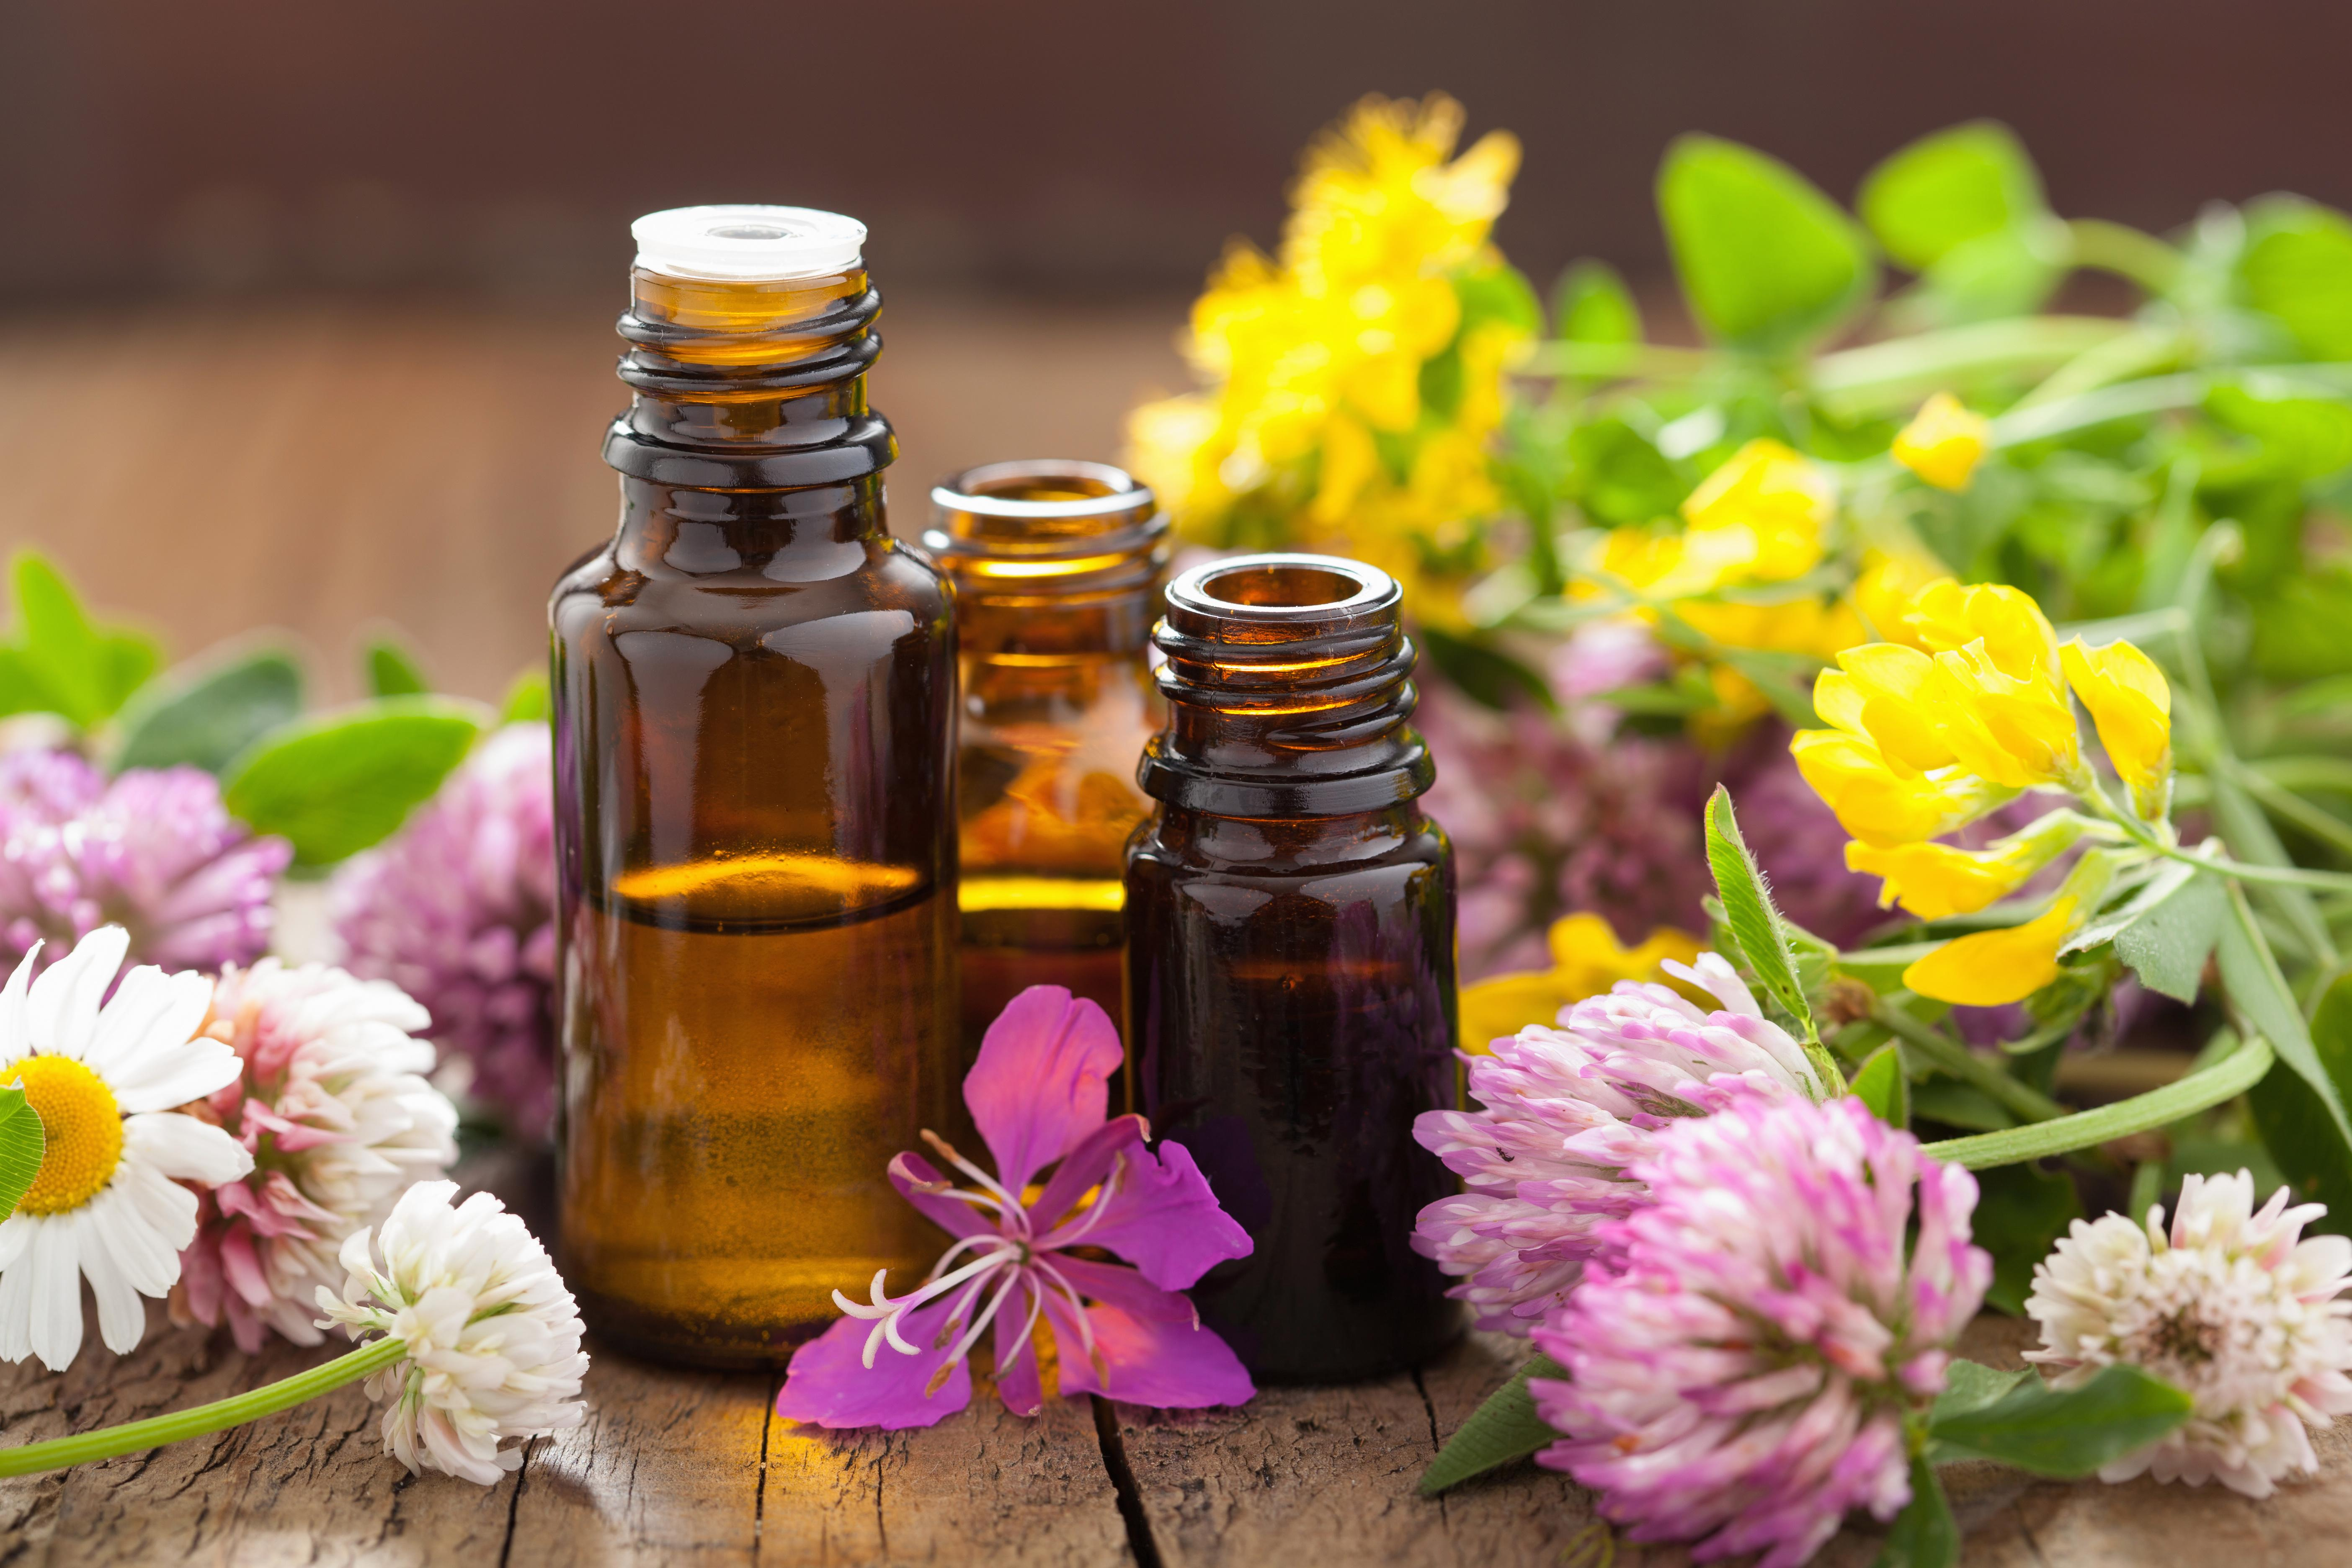 Getting Started with Essential Oils - Calgary West